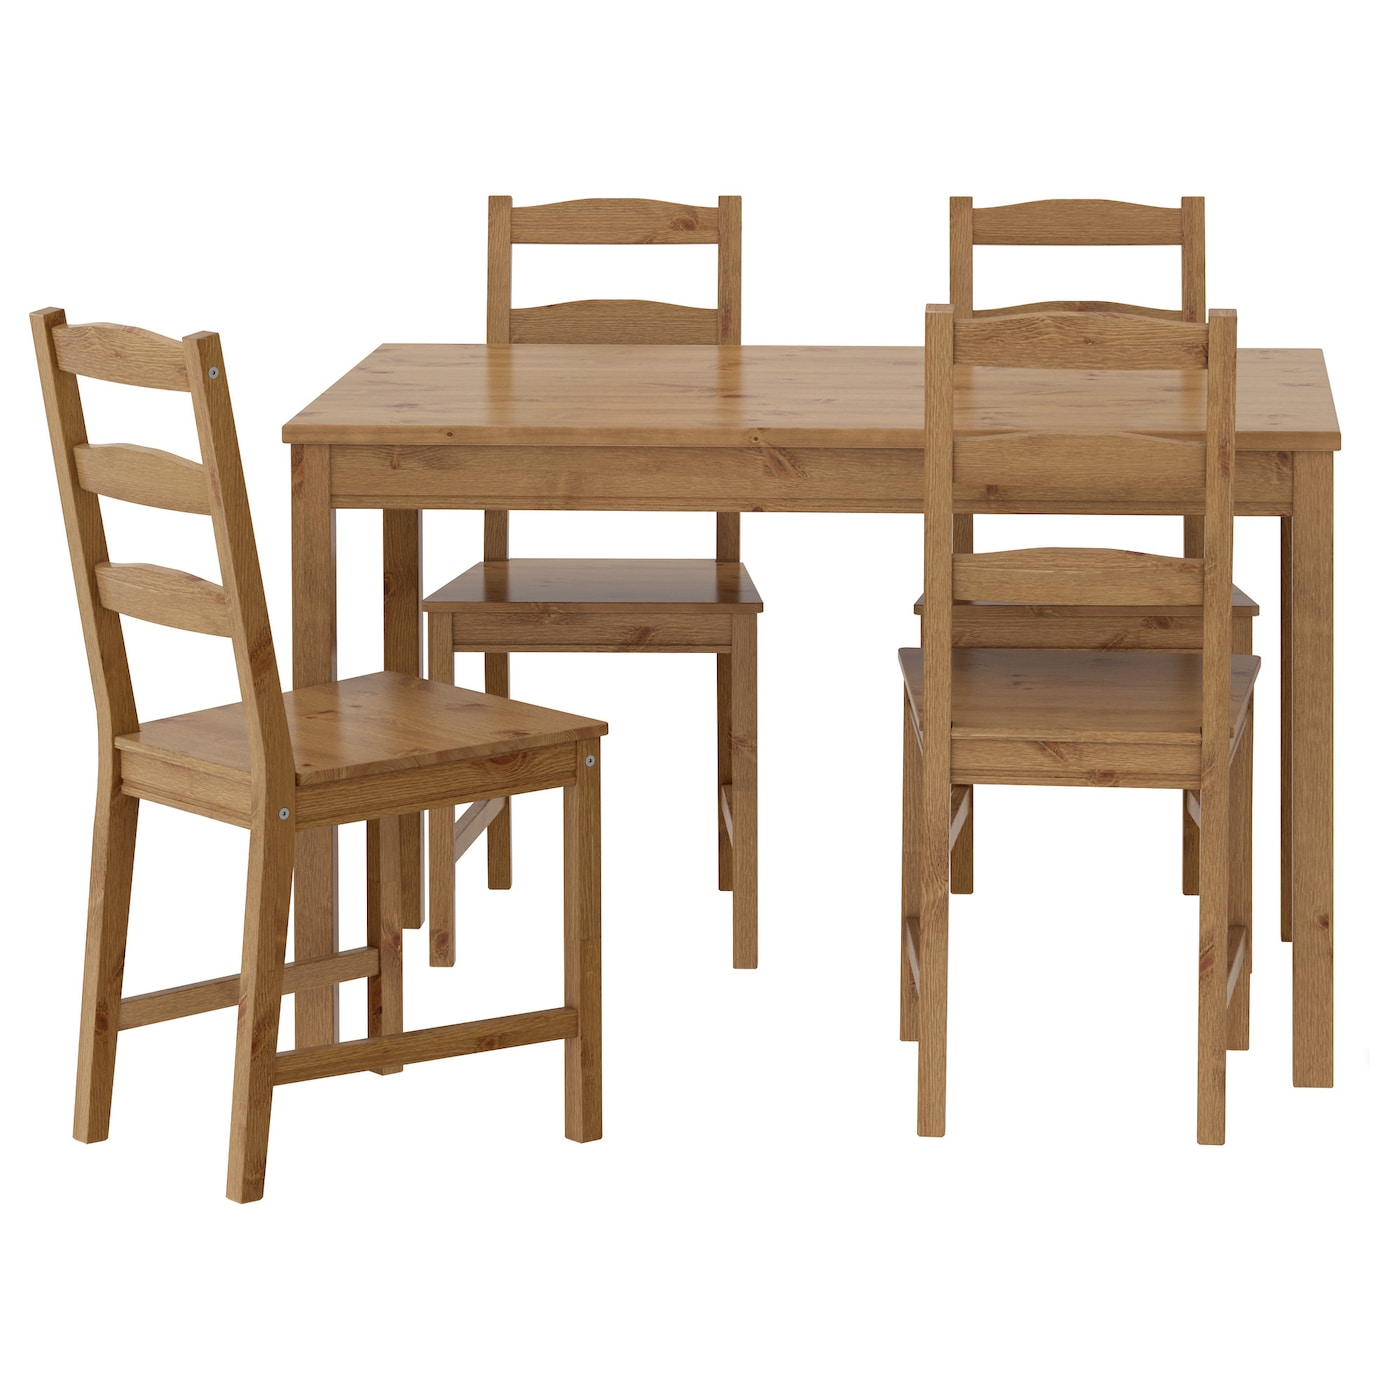 Dining table sets dining room sets ikea for Ikea dining table and chairs set